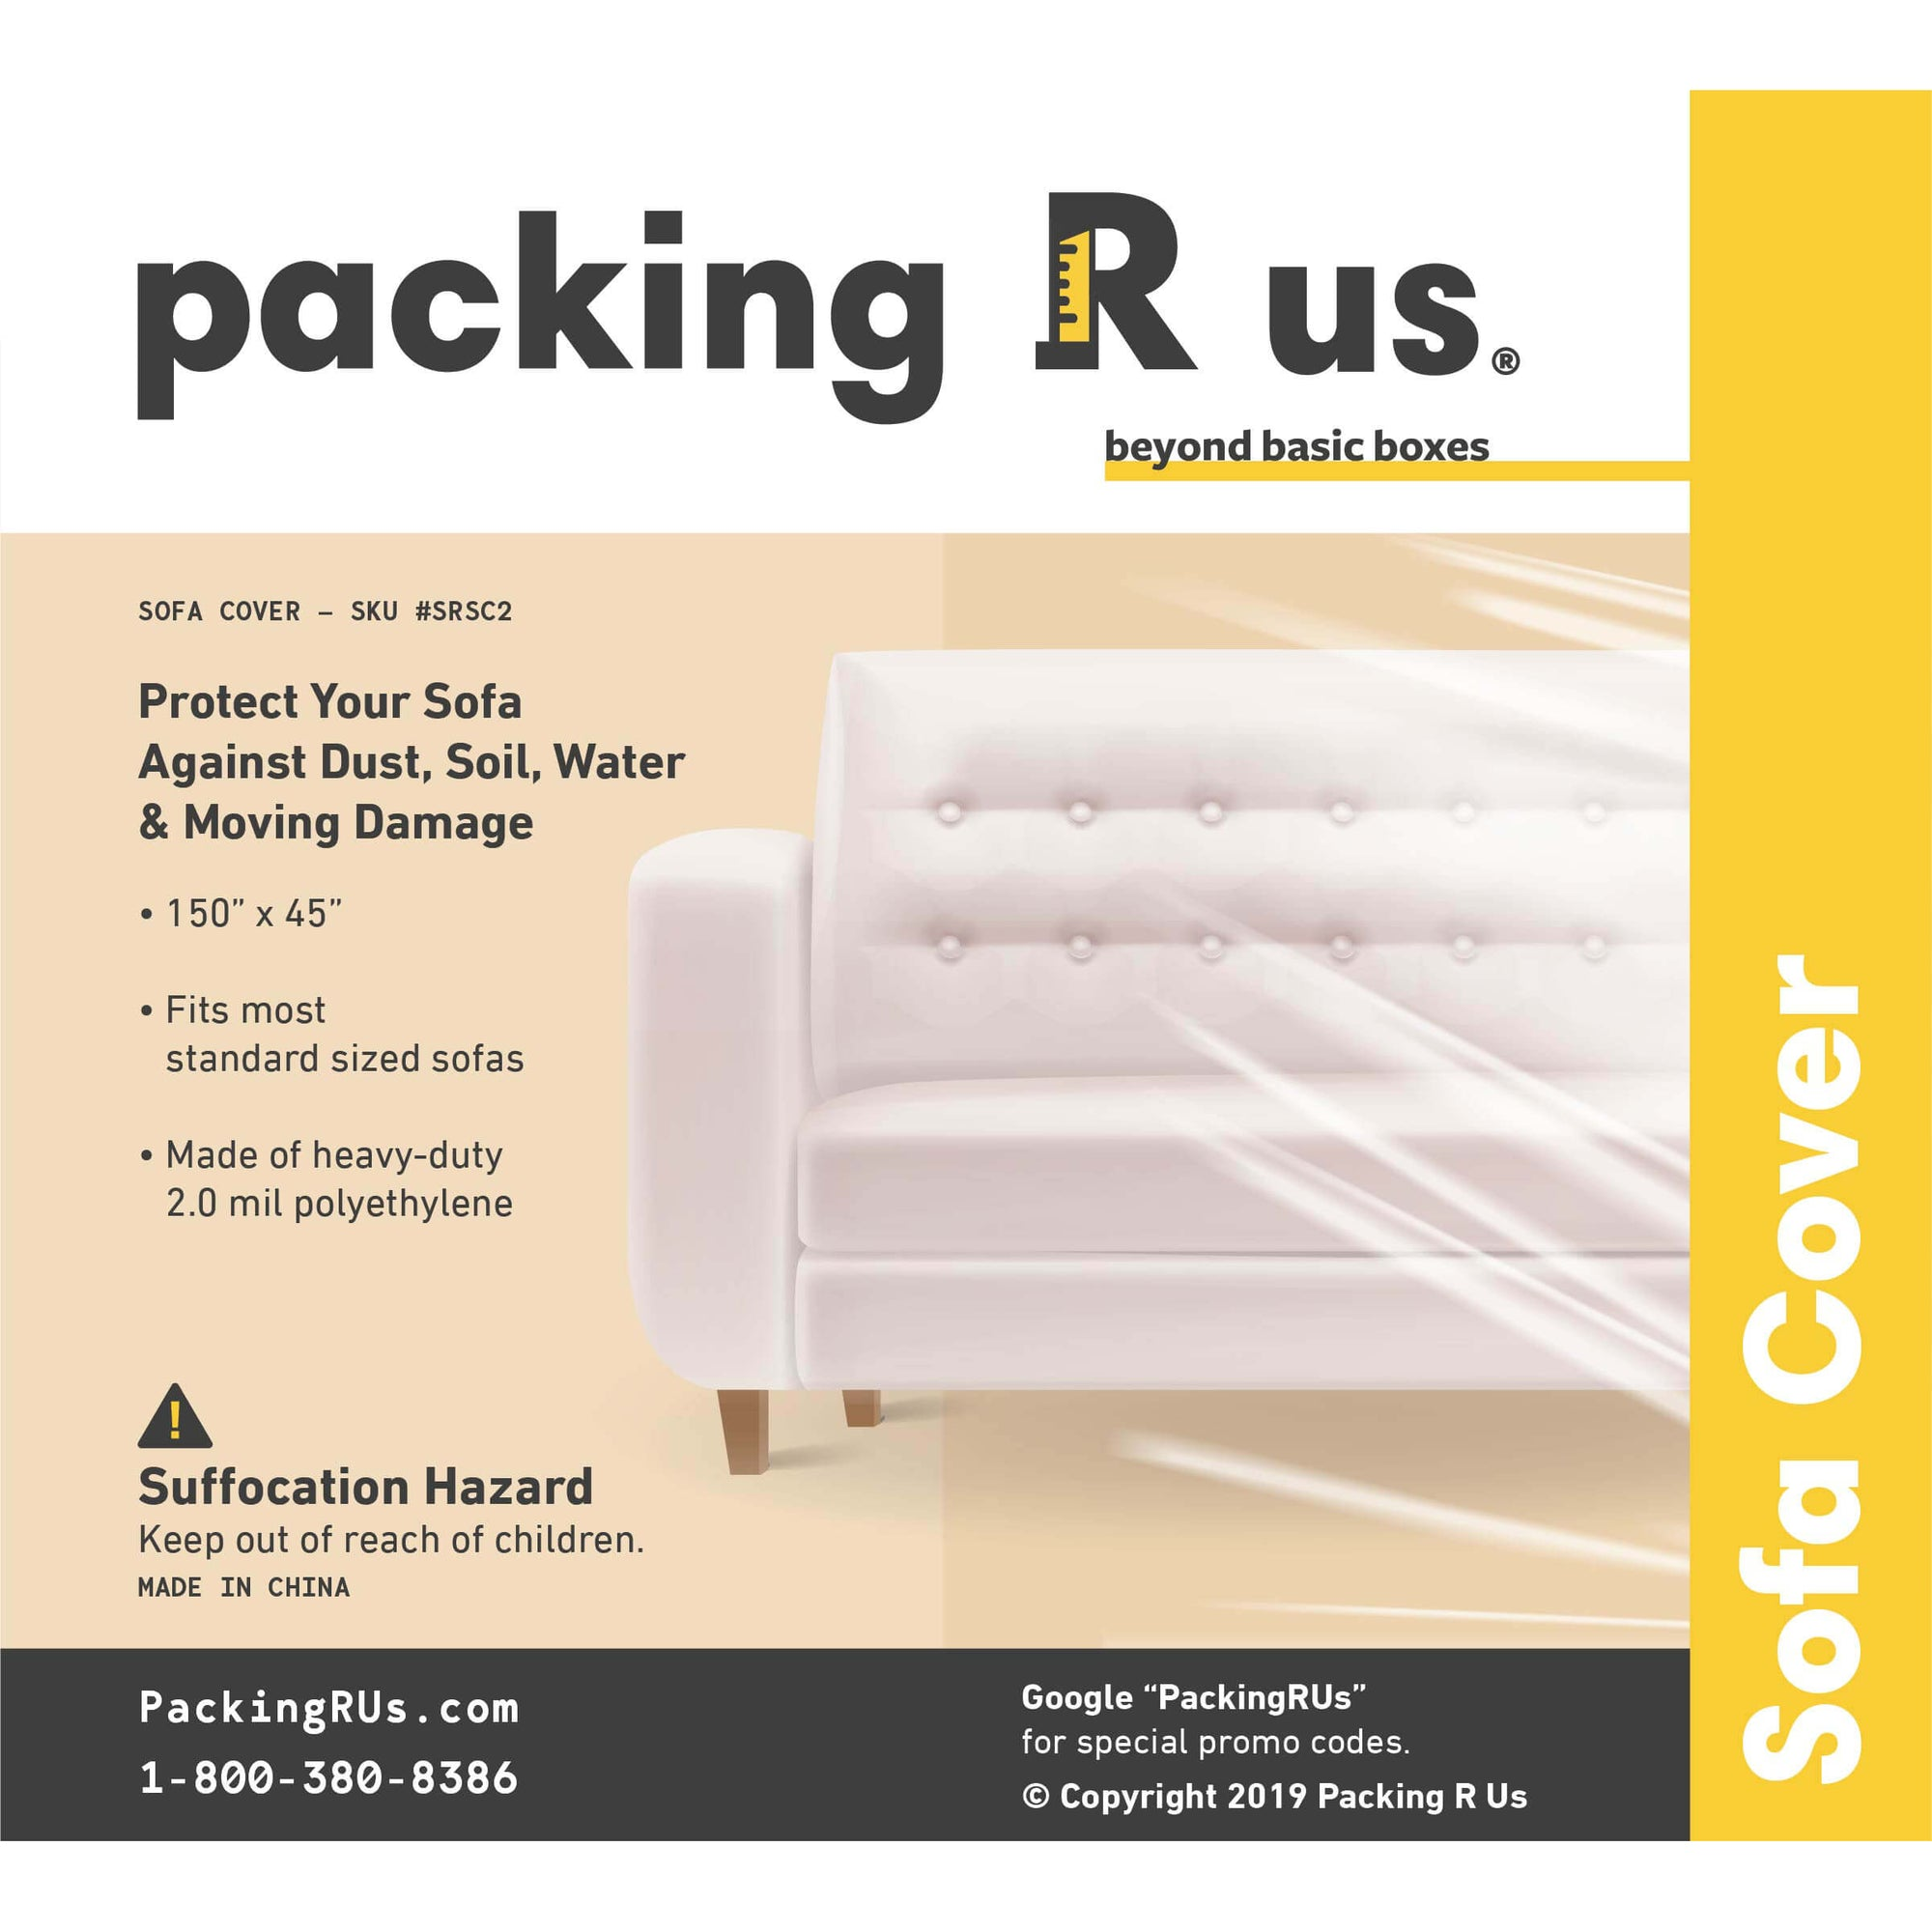 Clear Plastic Sofa Cover Bag Packing R Us Moving Packing Shipping Storing Supplies